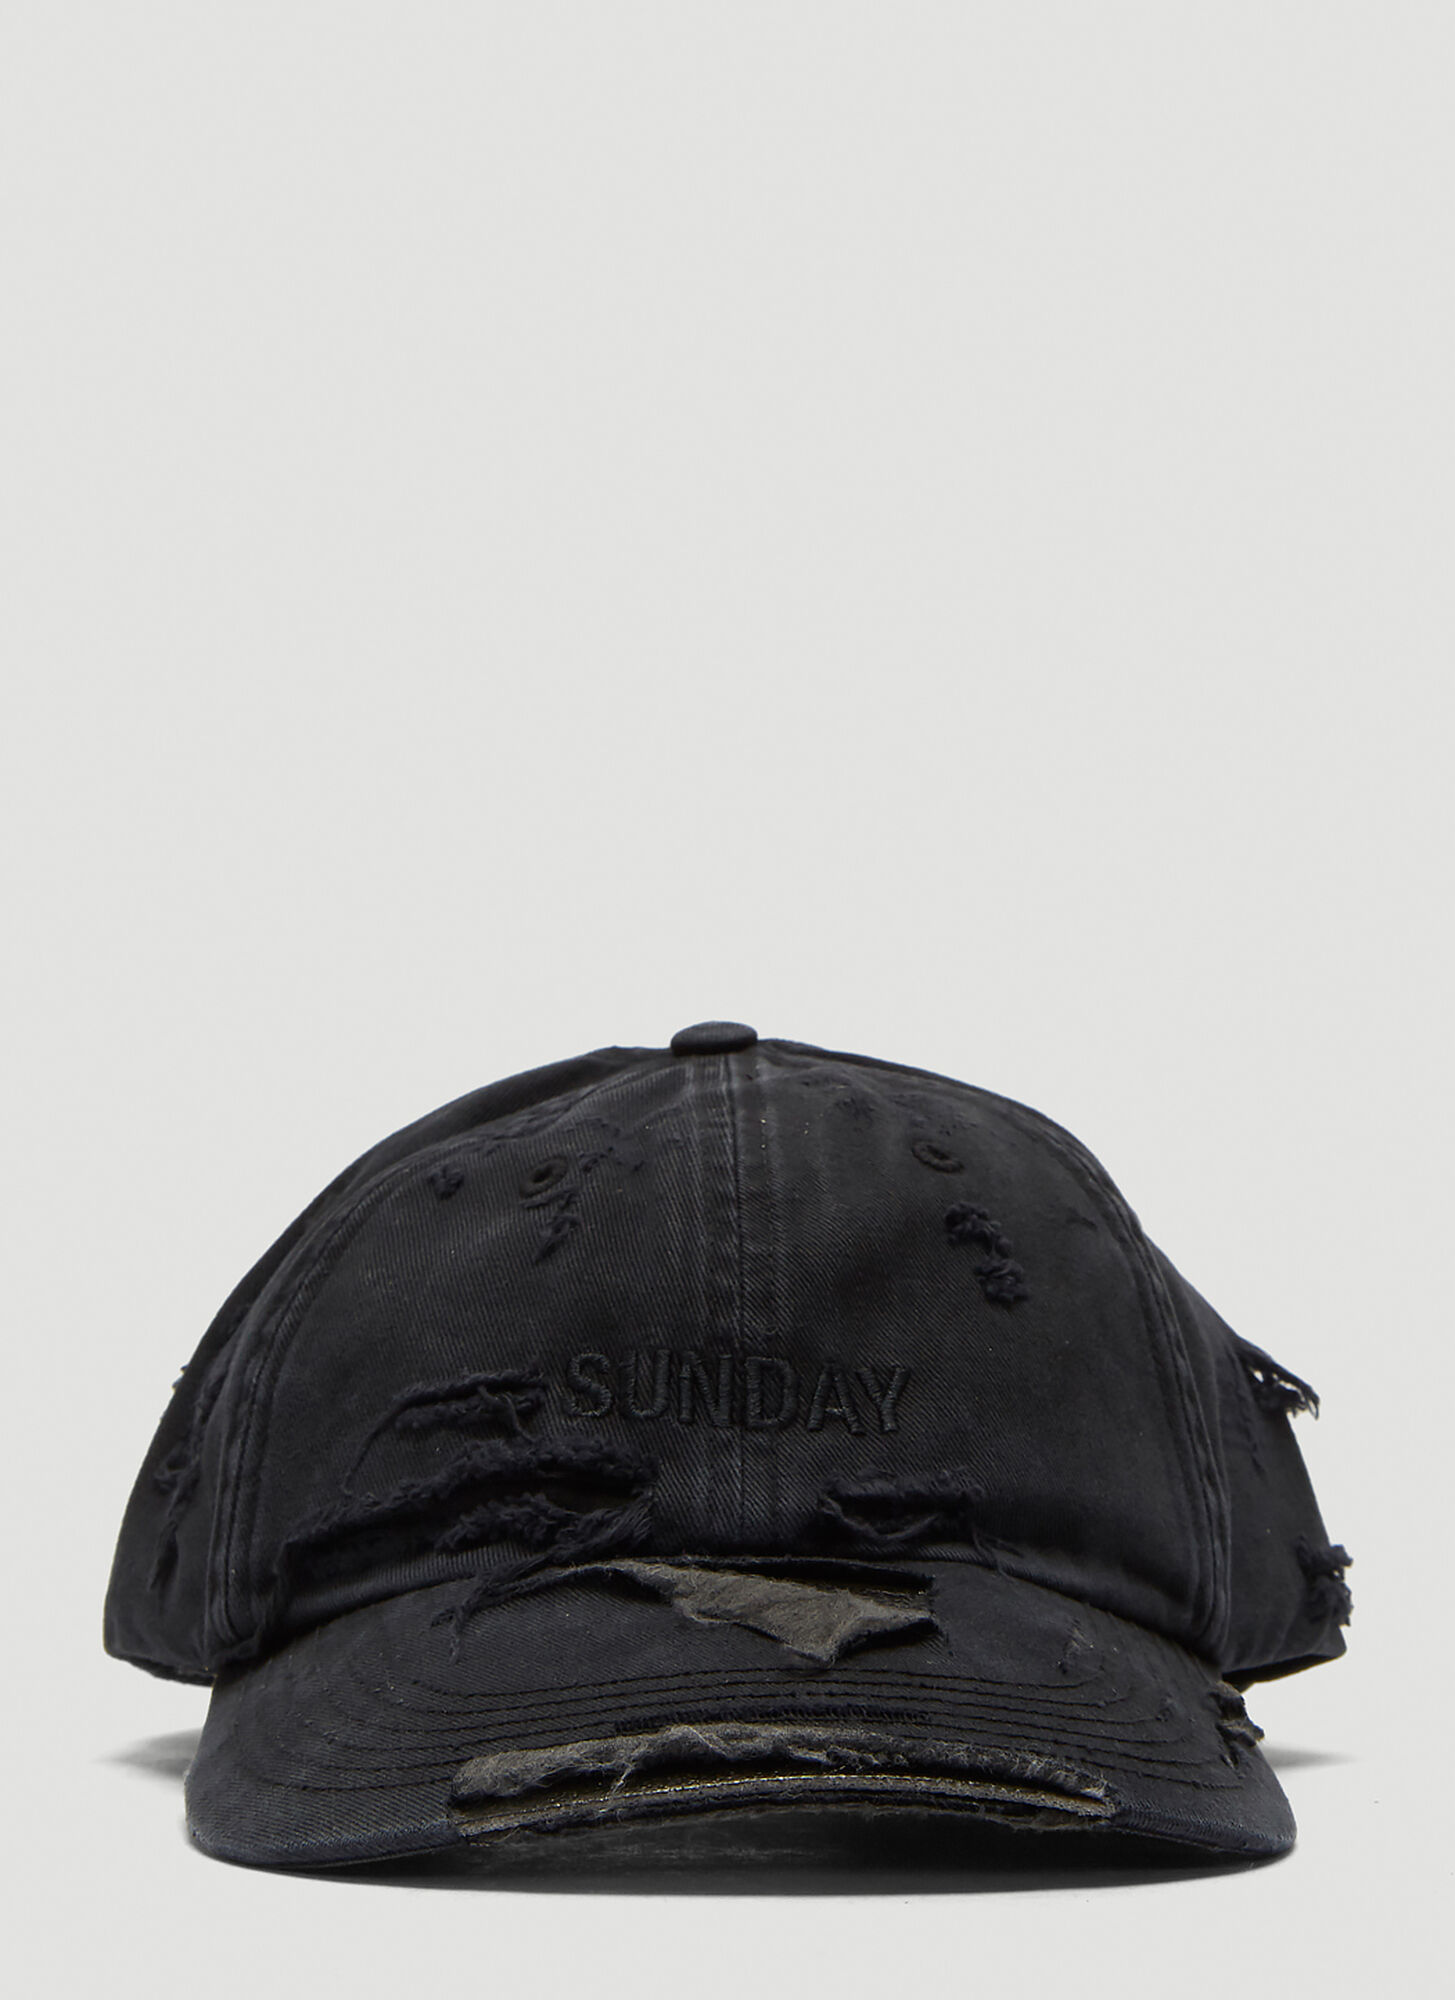 Vetements X Reebok Weekday Sunday Baseball Cap in Black